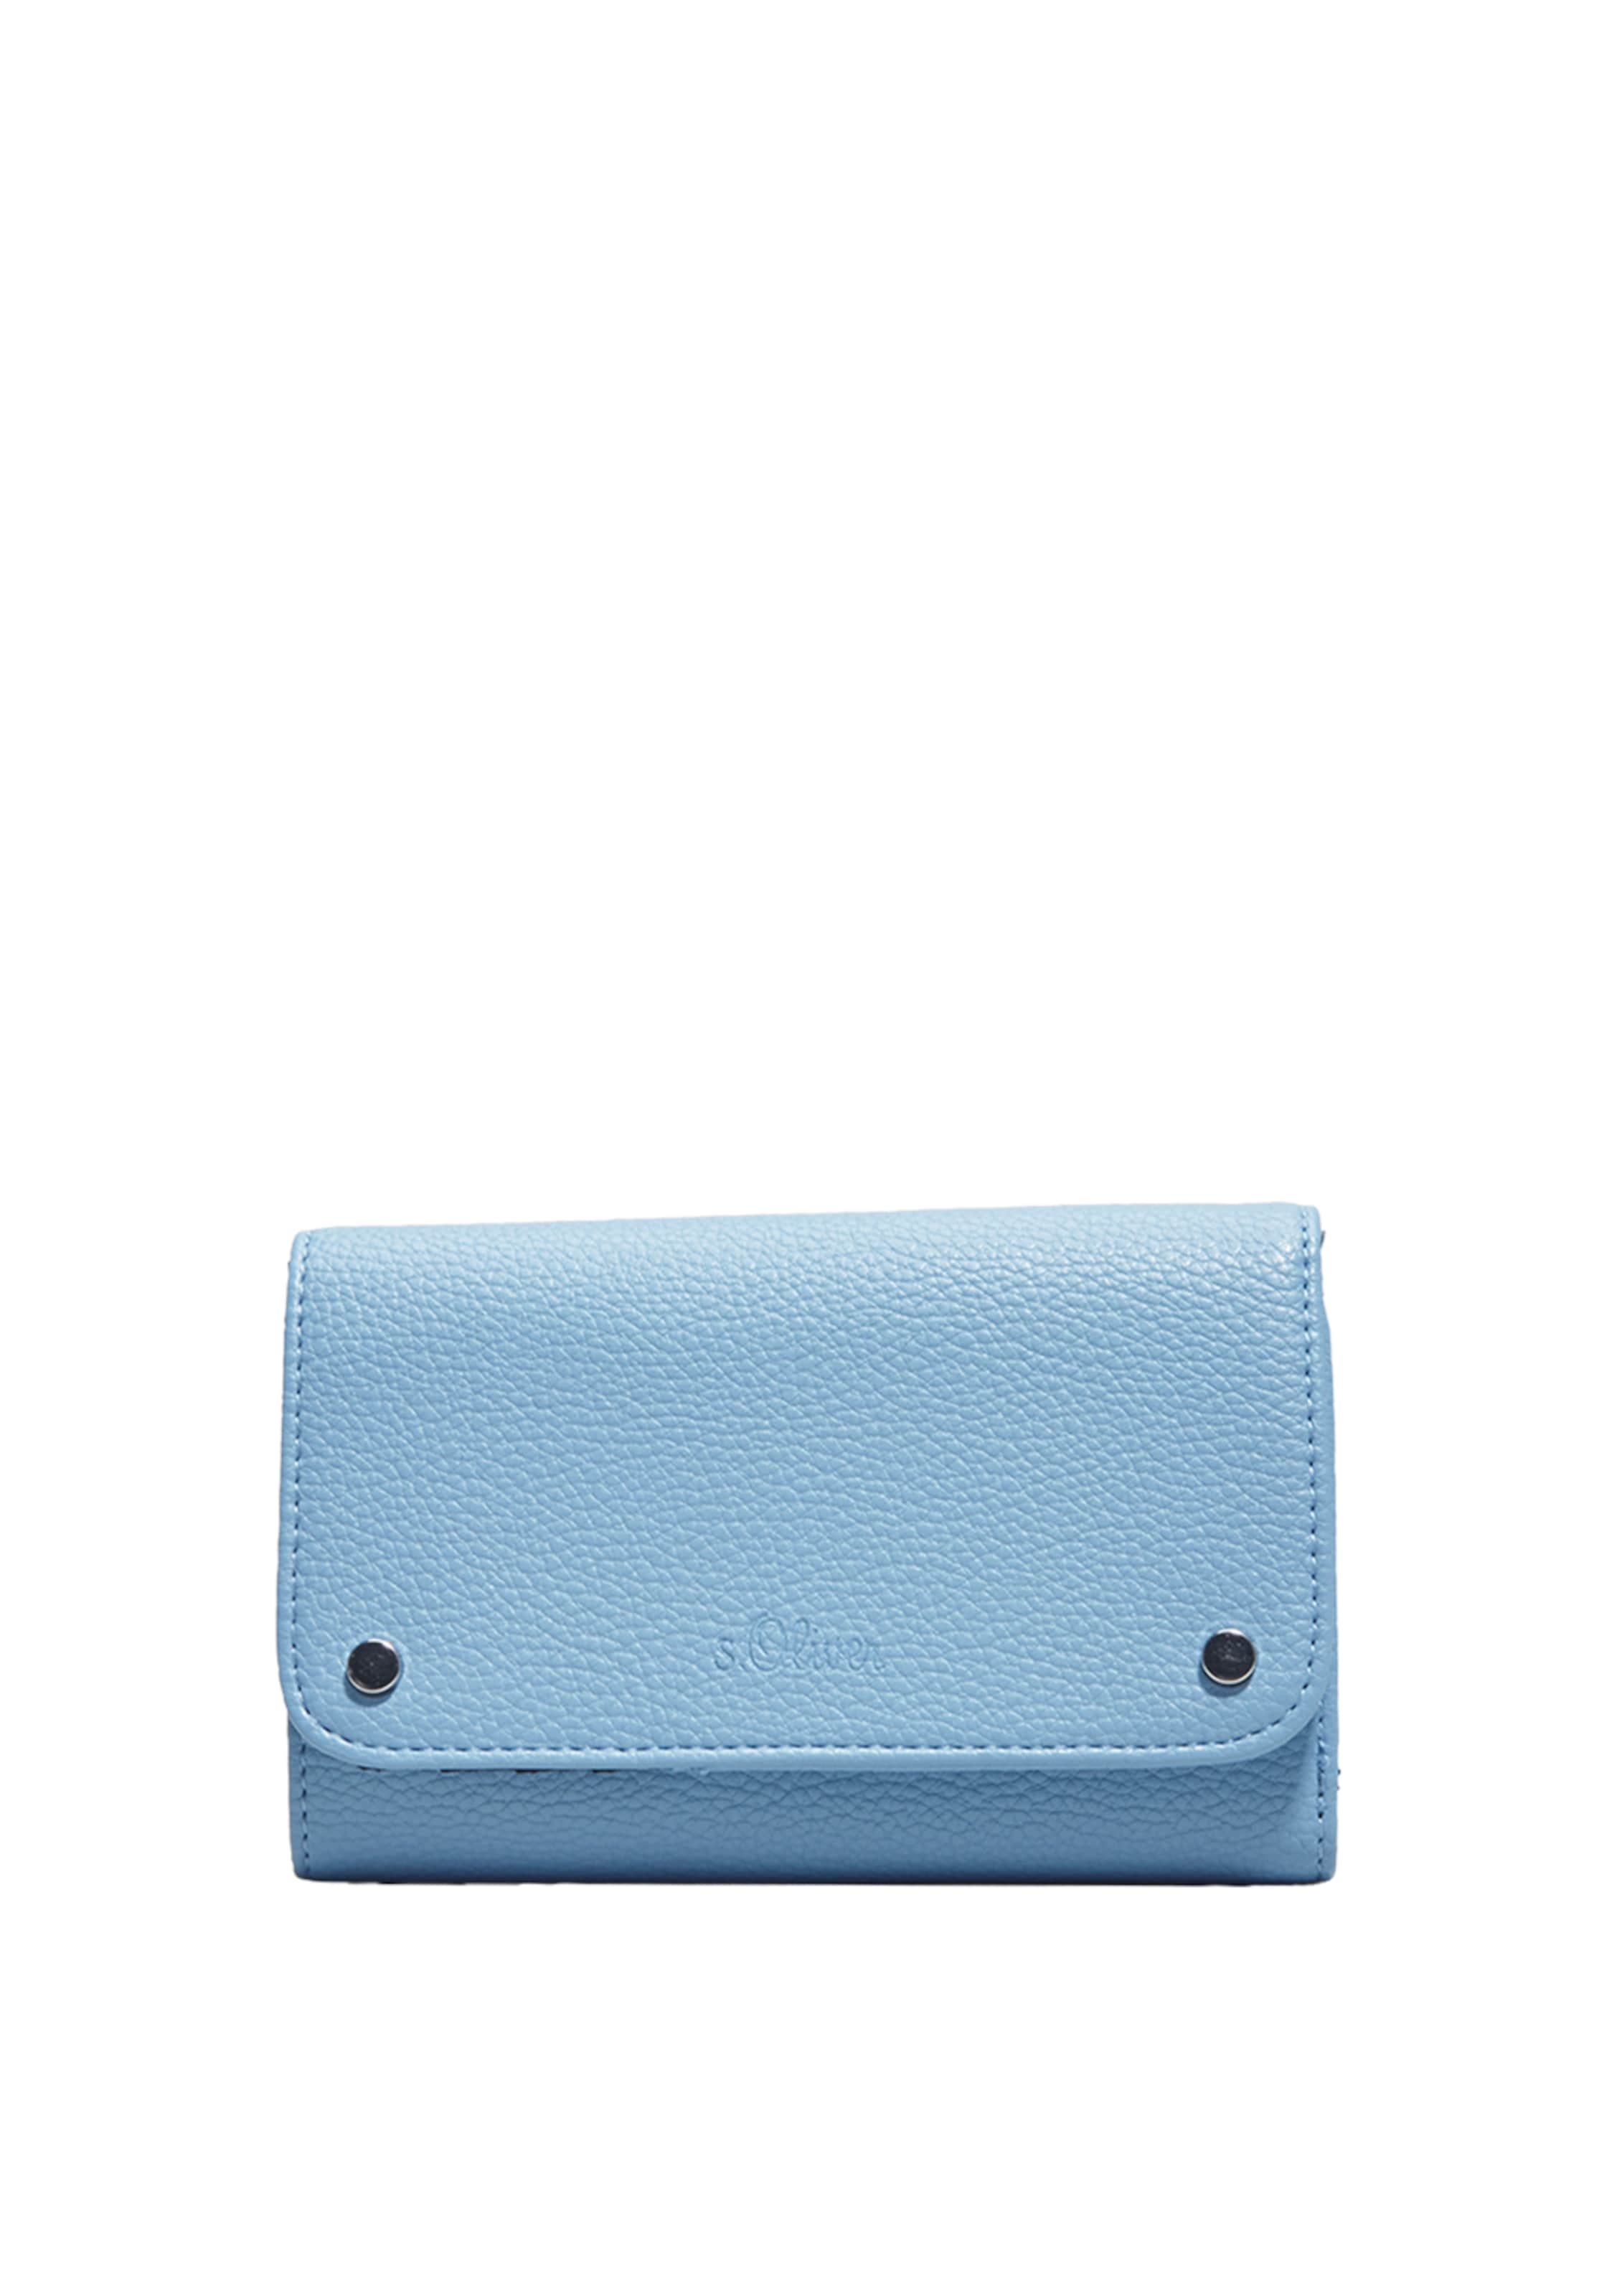 Himmelblau Red Portemonnaie oliver 'wallet' In S Label CxBEreQdWo